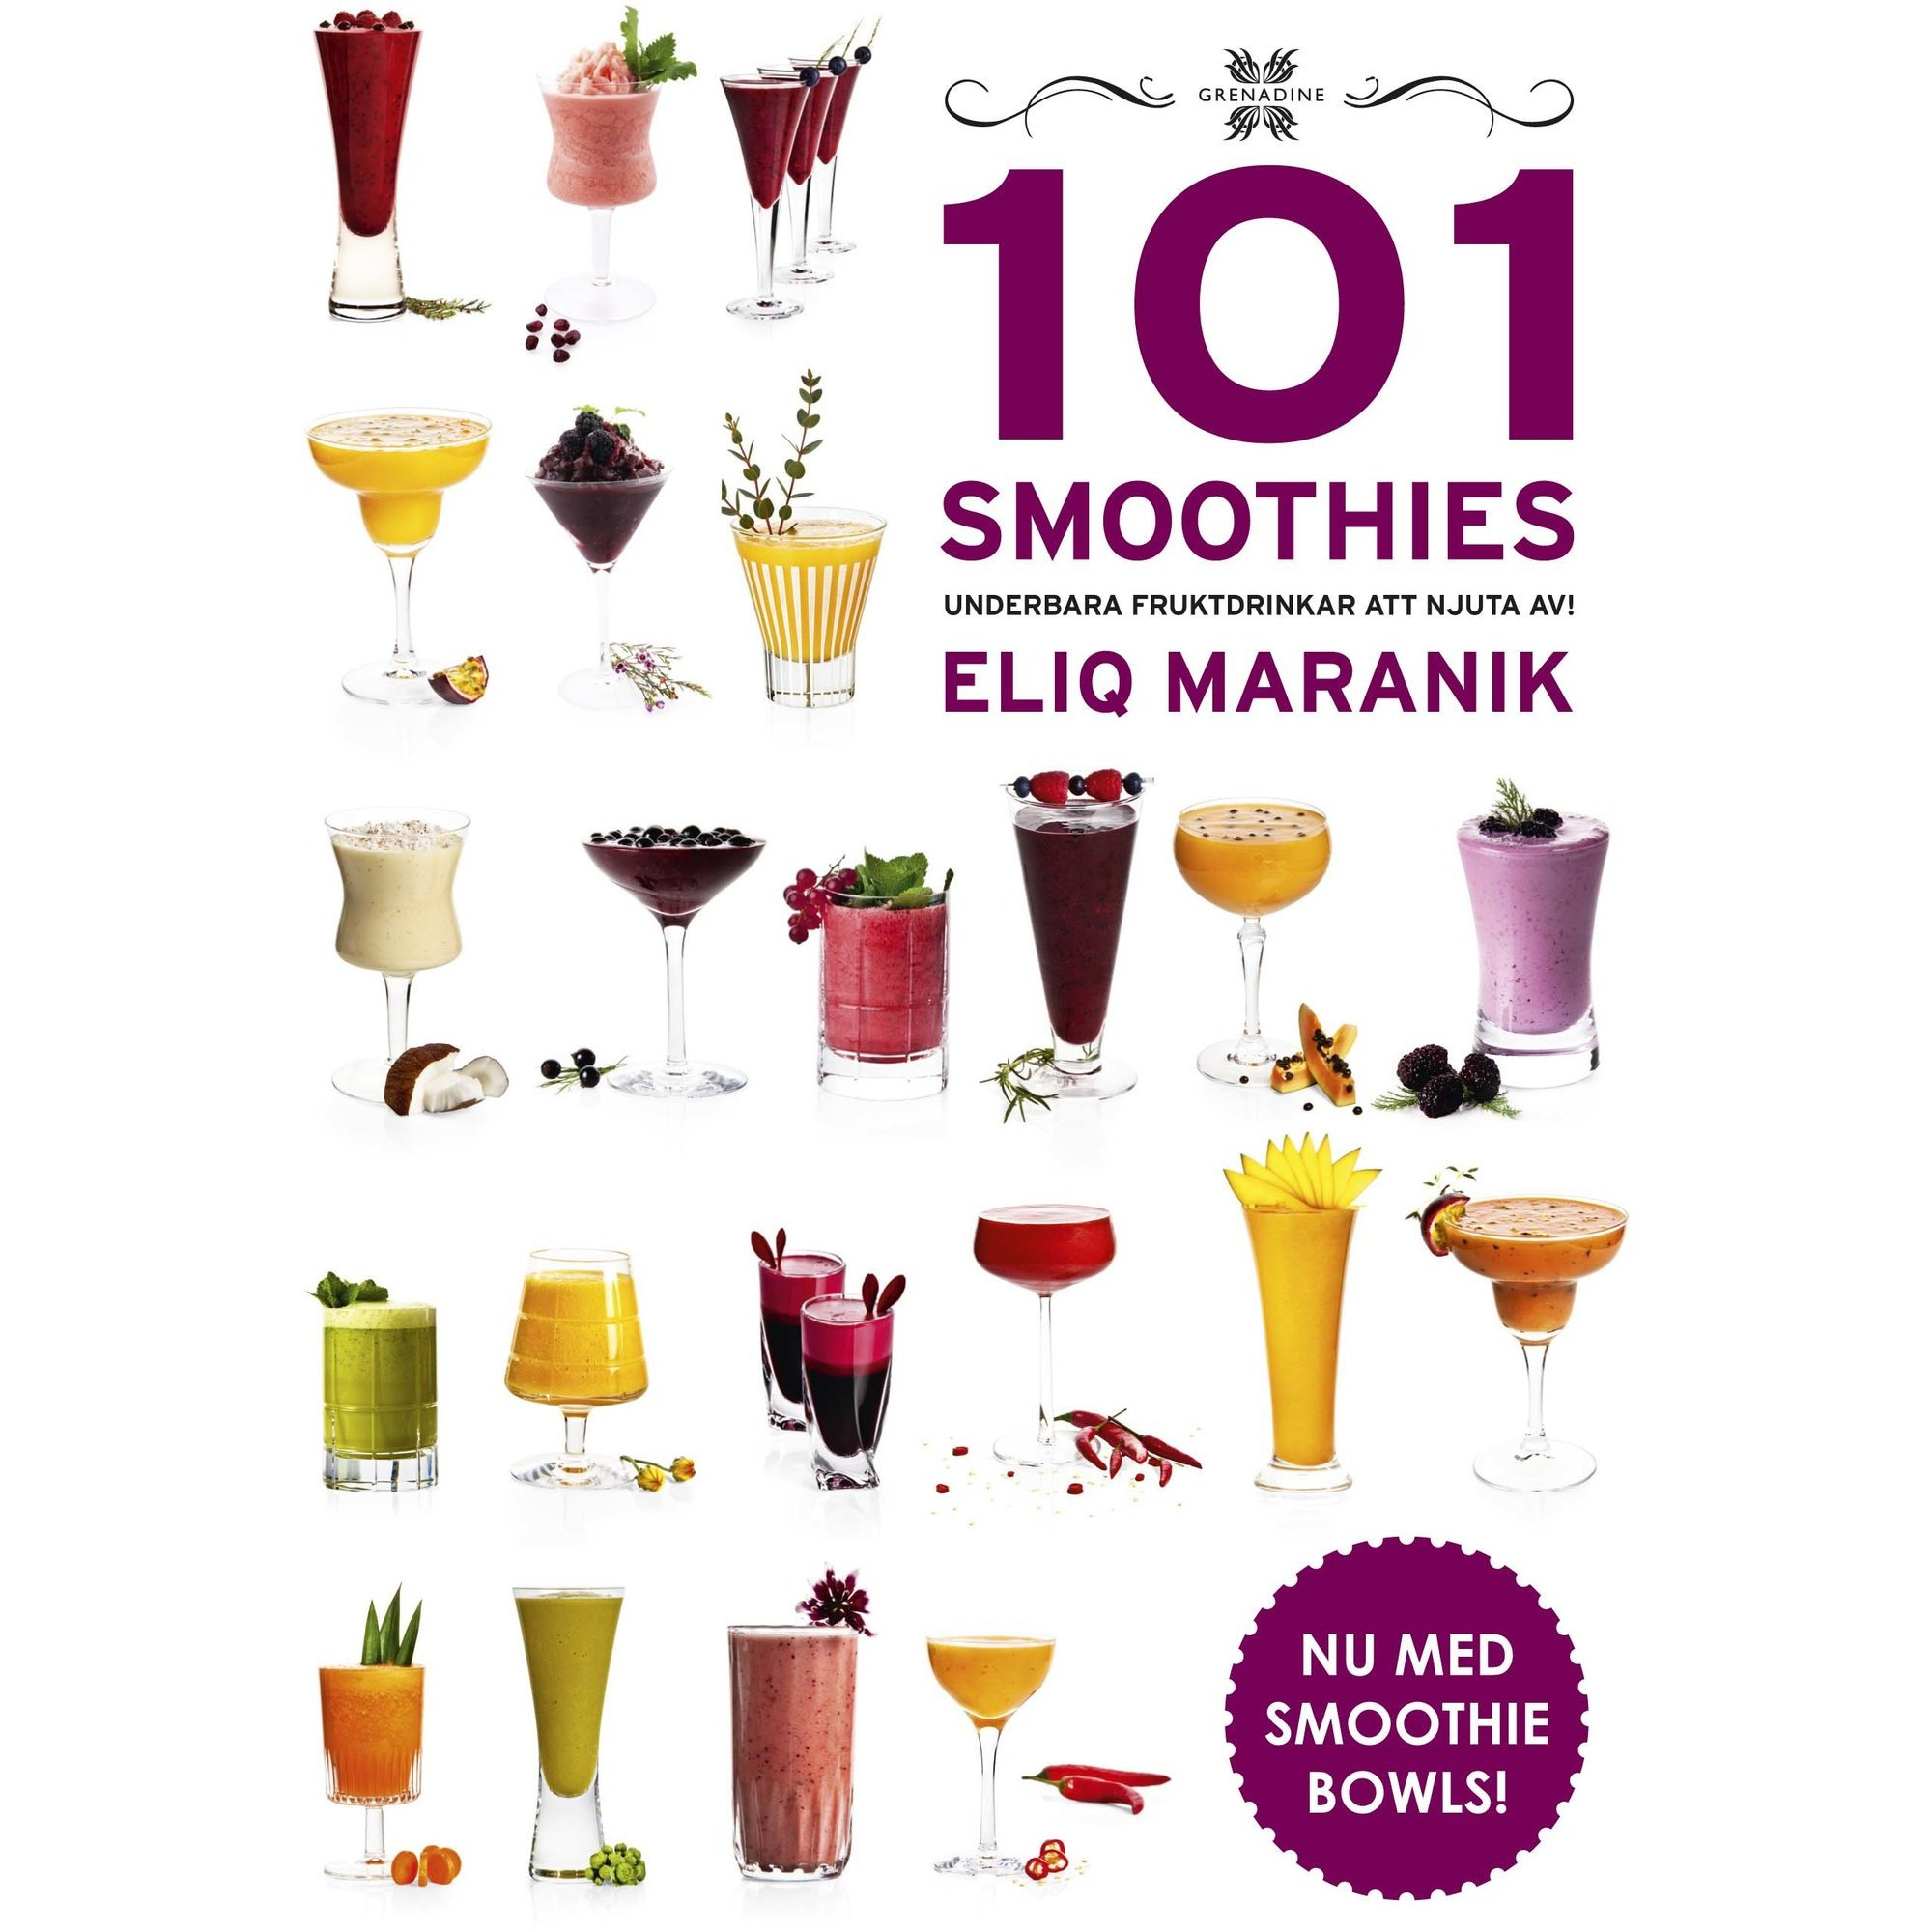 Kitchen Basic Eliq Maraniq 101 Smoothies